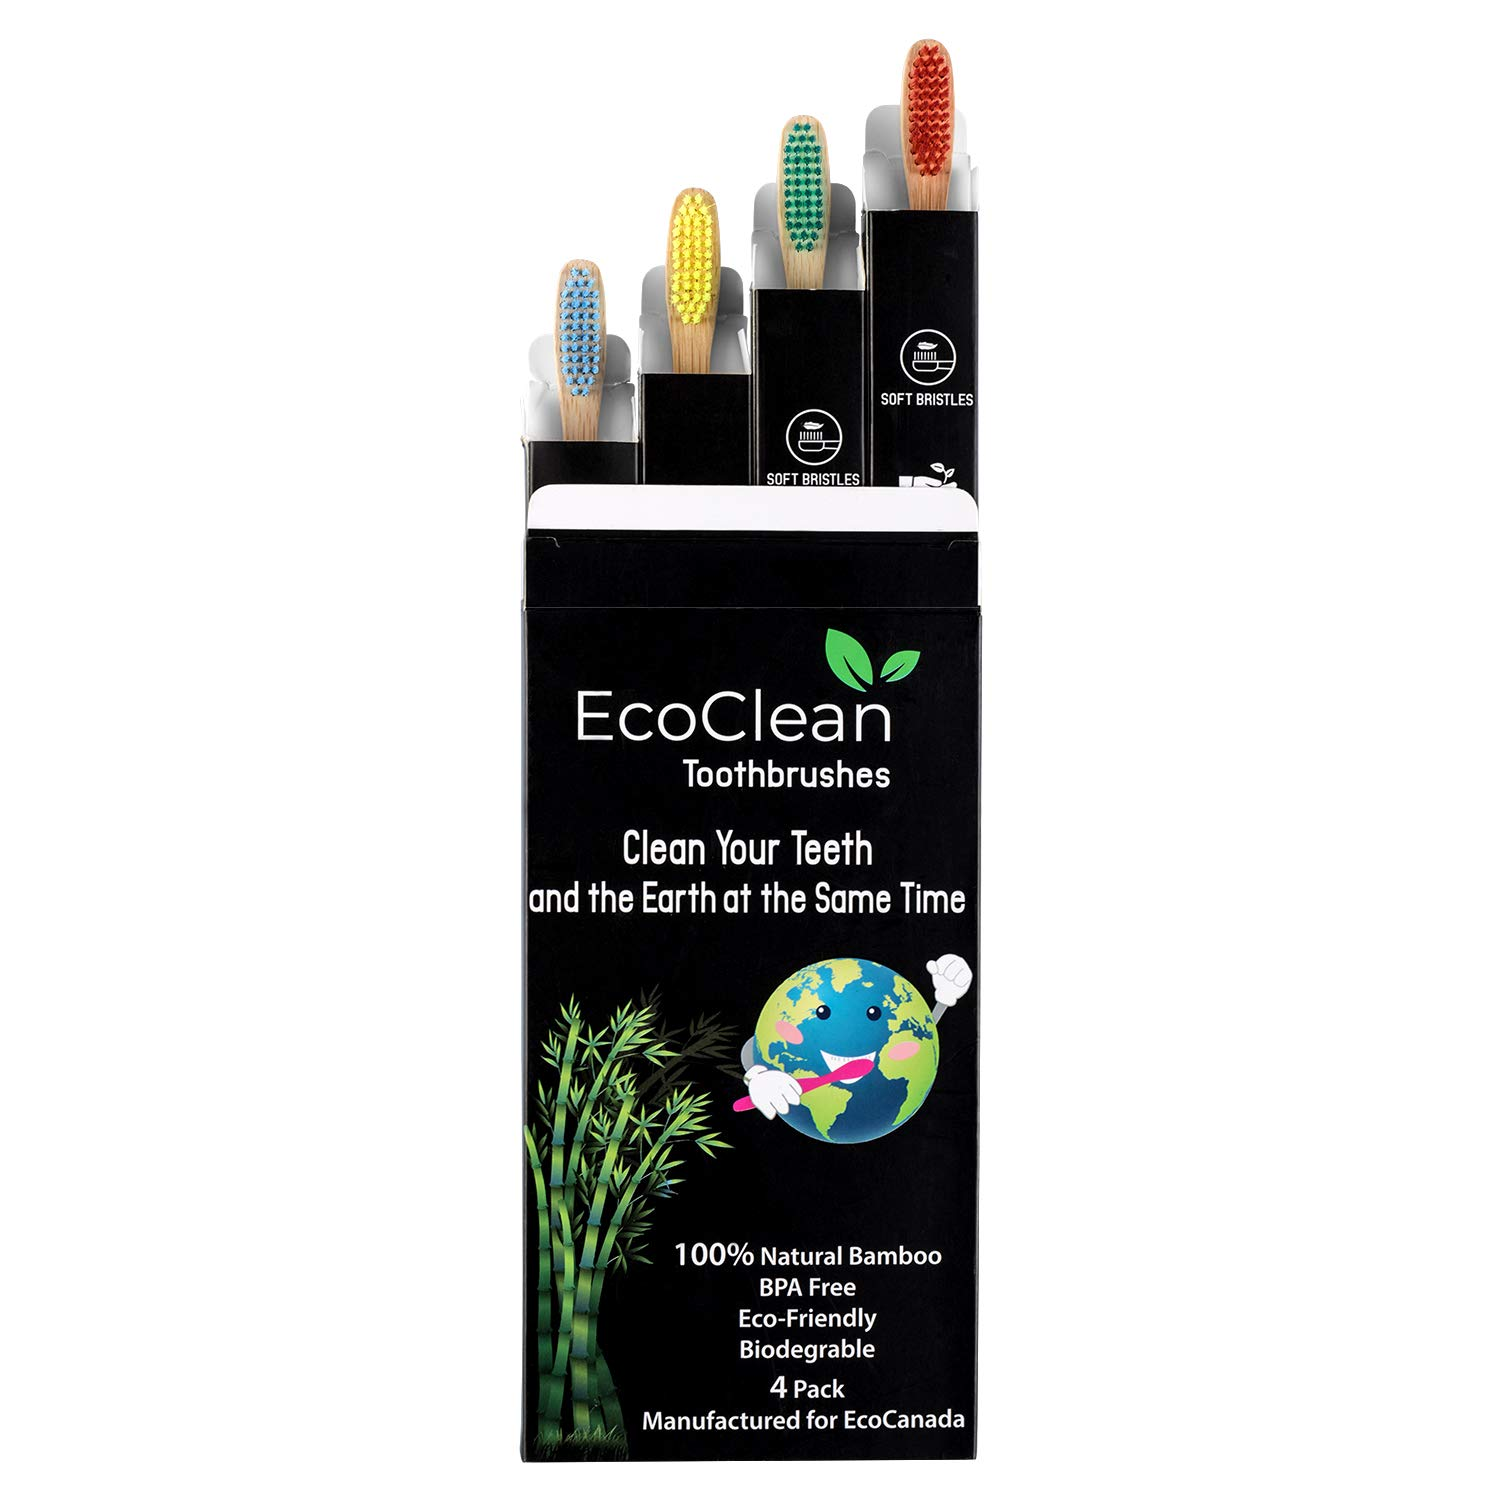 EcoClean bamboo toothbrush from Amazon